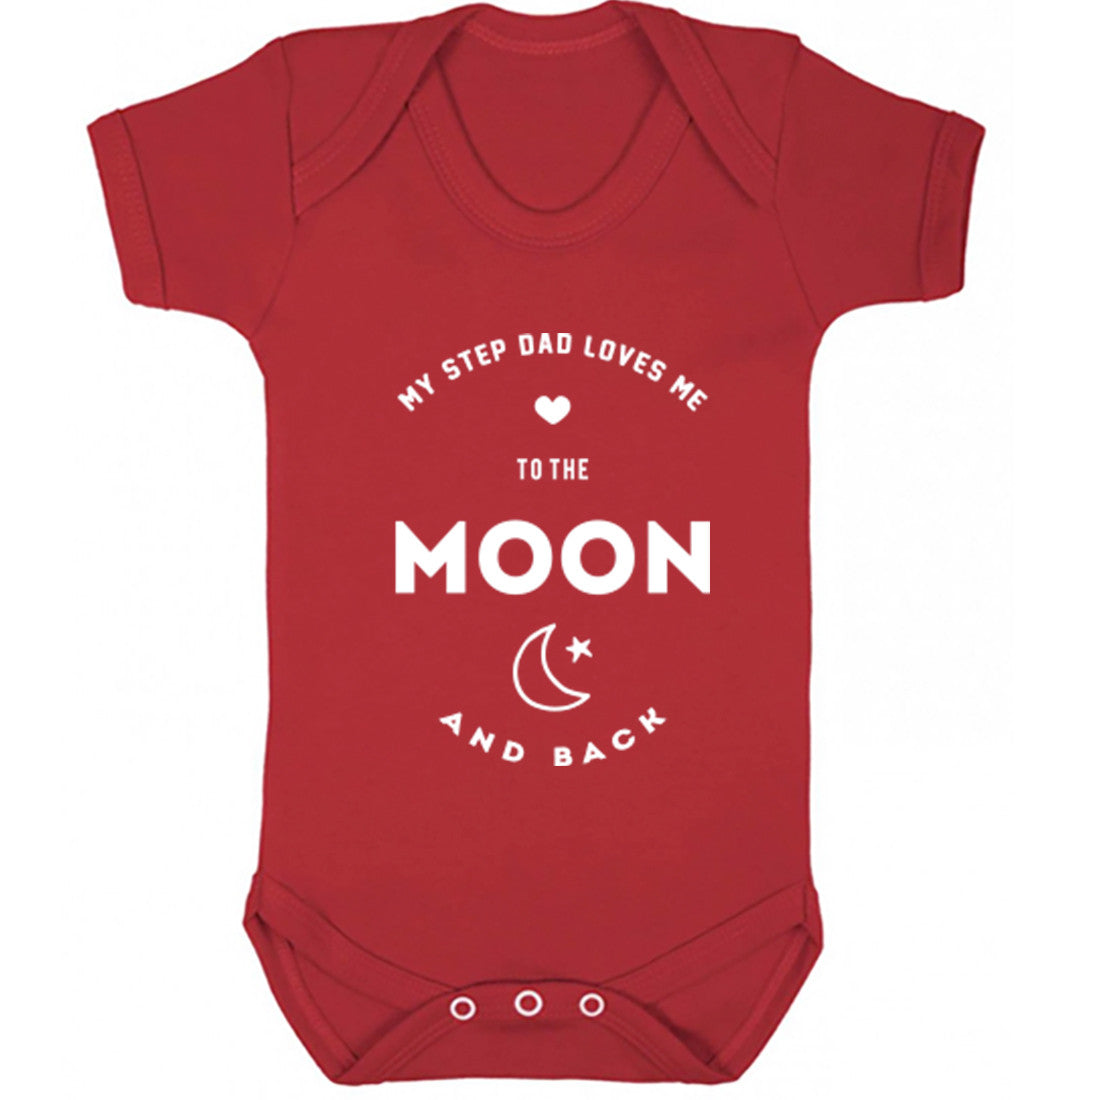 My Step Dad Loves Me To The Moon And Back Baby Vest K1549 - Illustrated Identity Ltd.